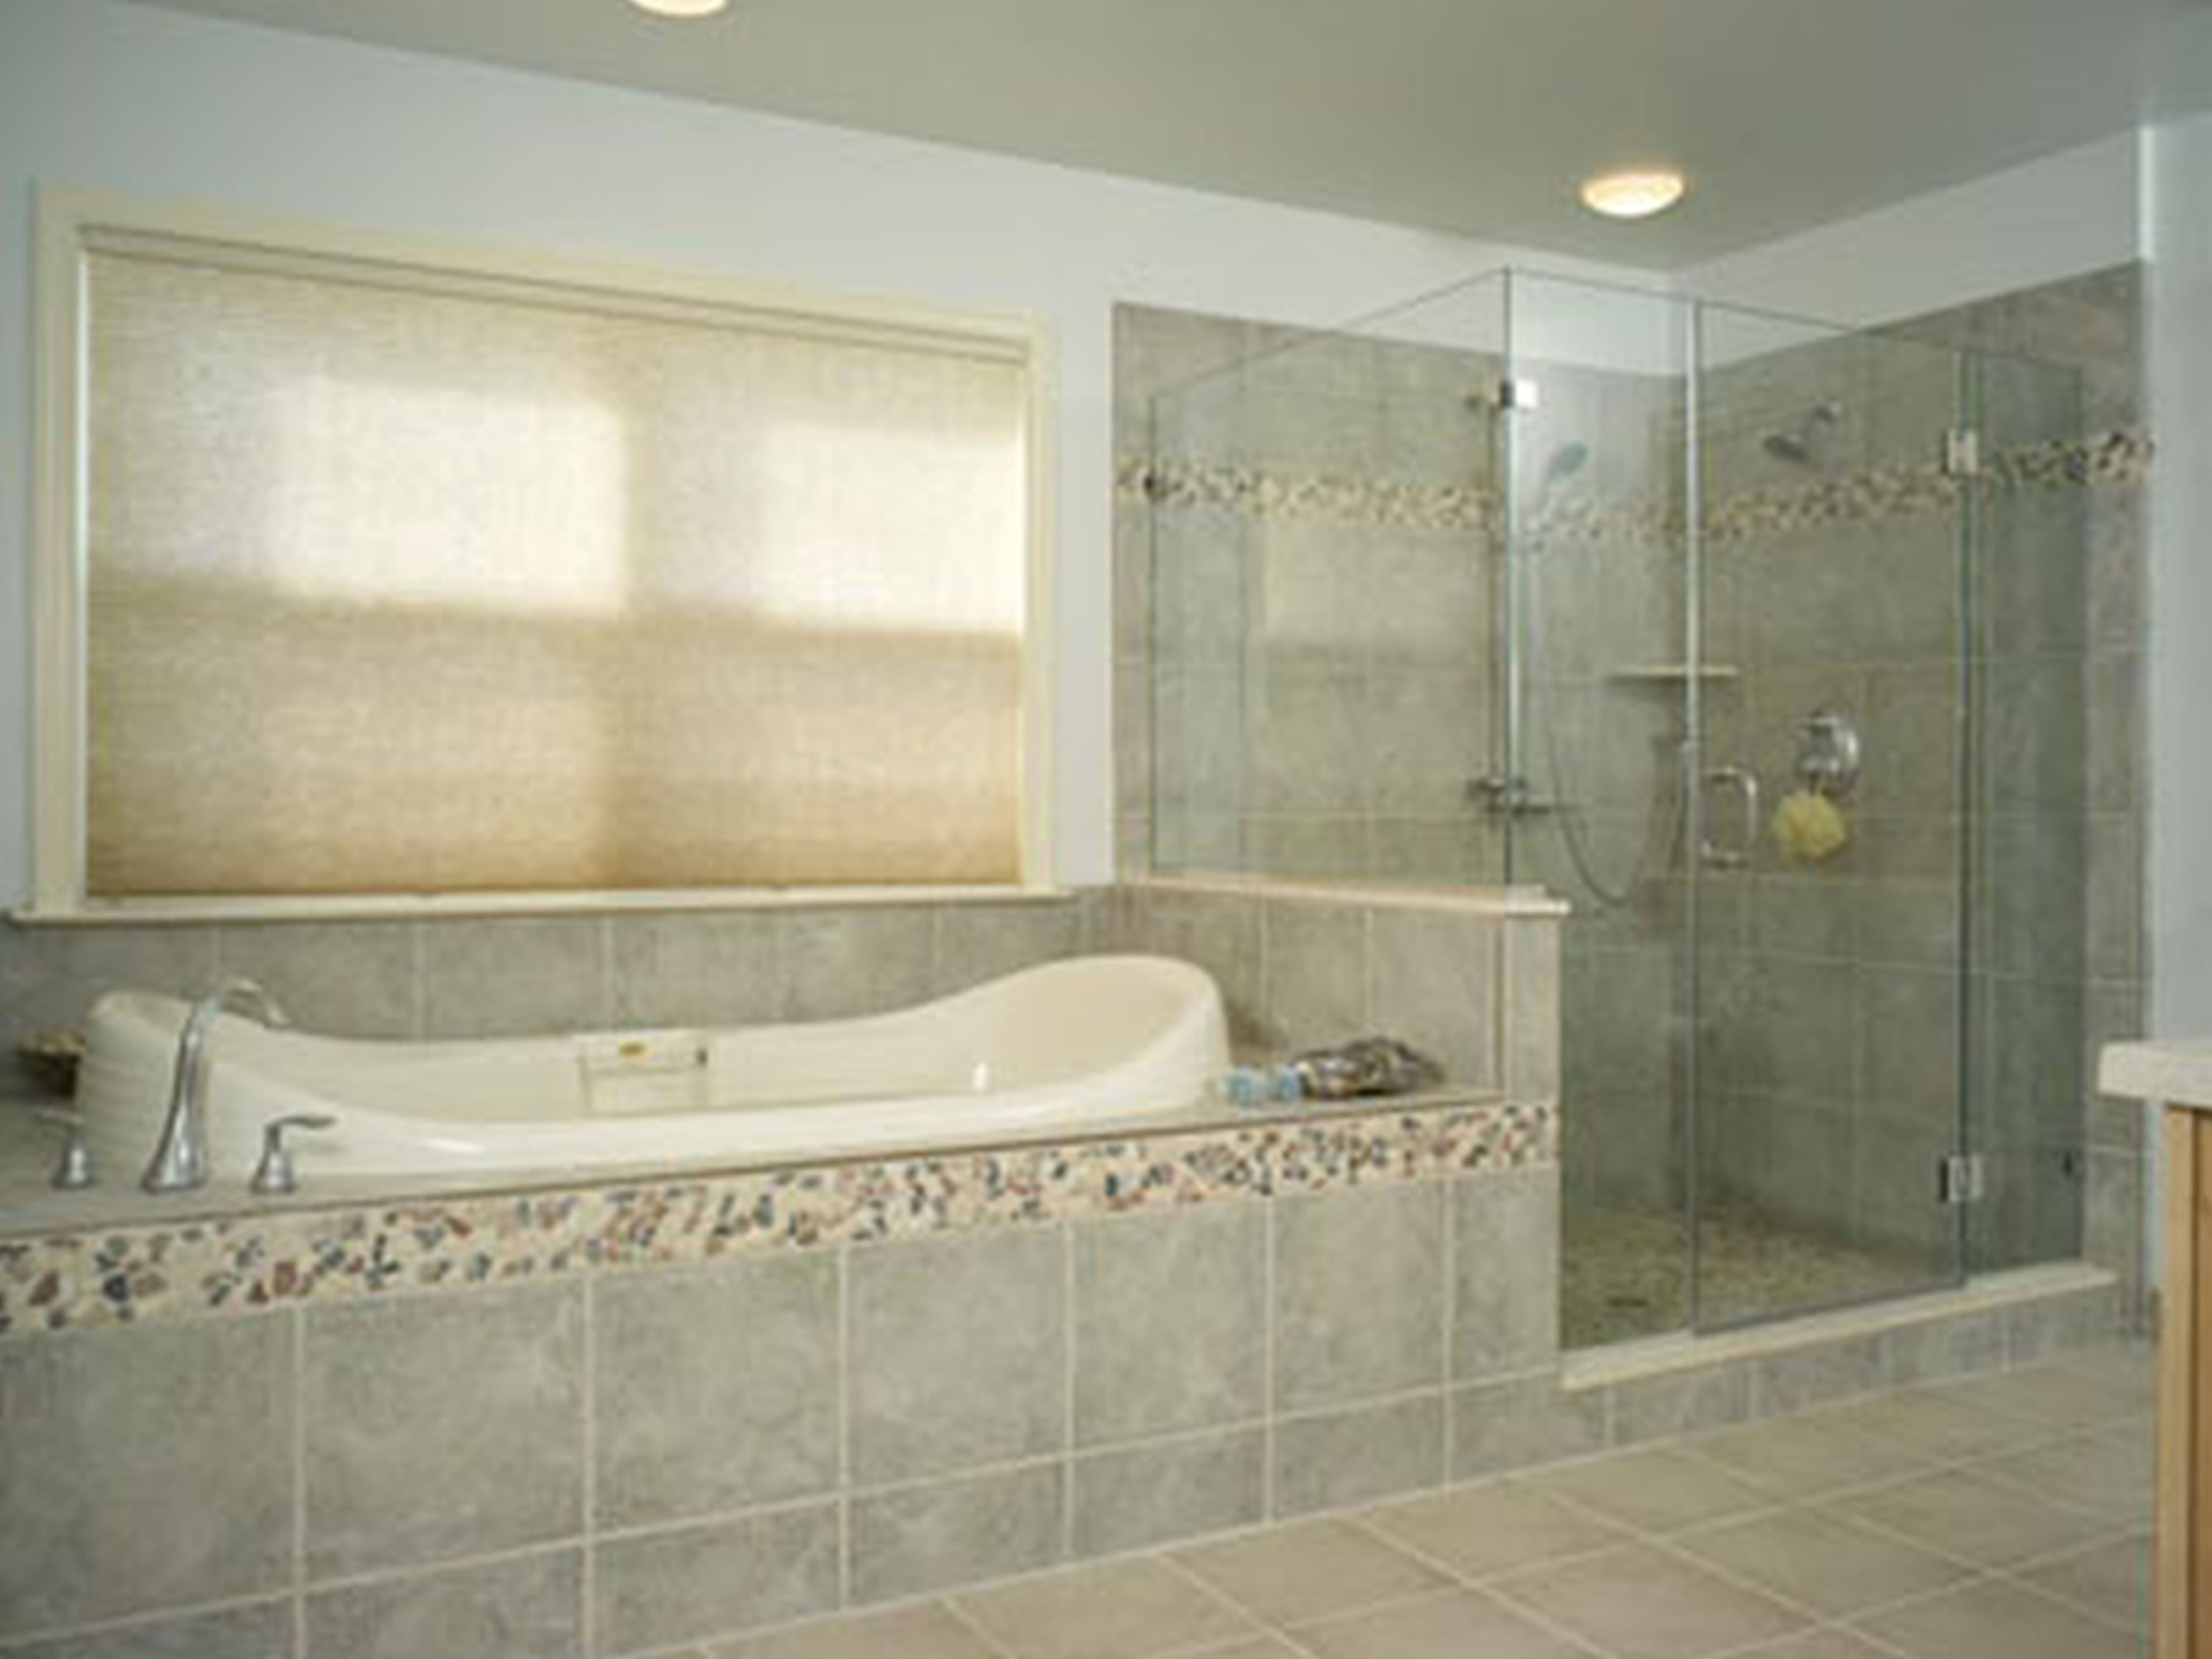 10 Most Recommended Master Bathroom Ideas Photo Gallery master bathroom tile ideas tacoy image designs 2020